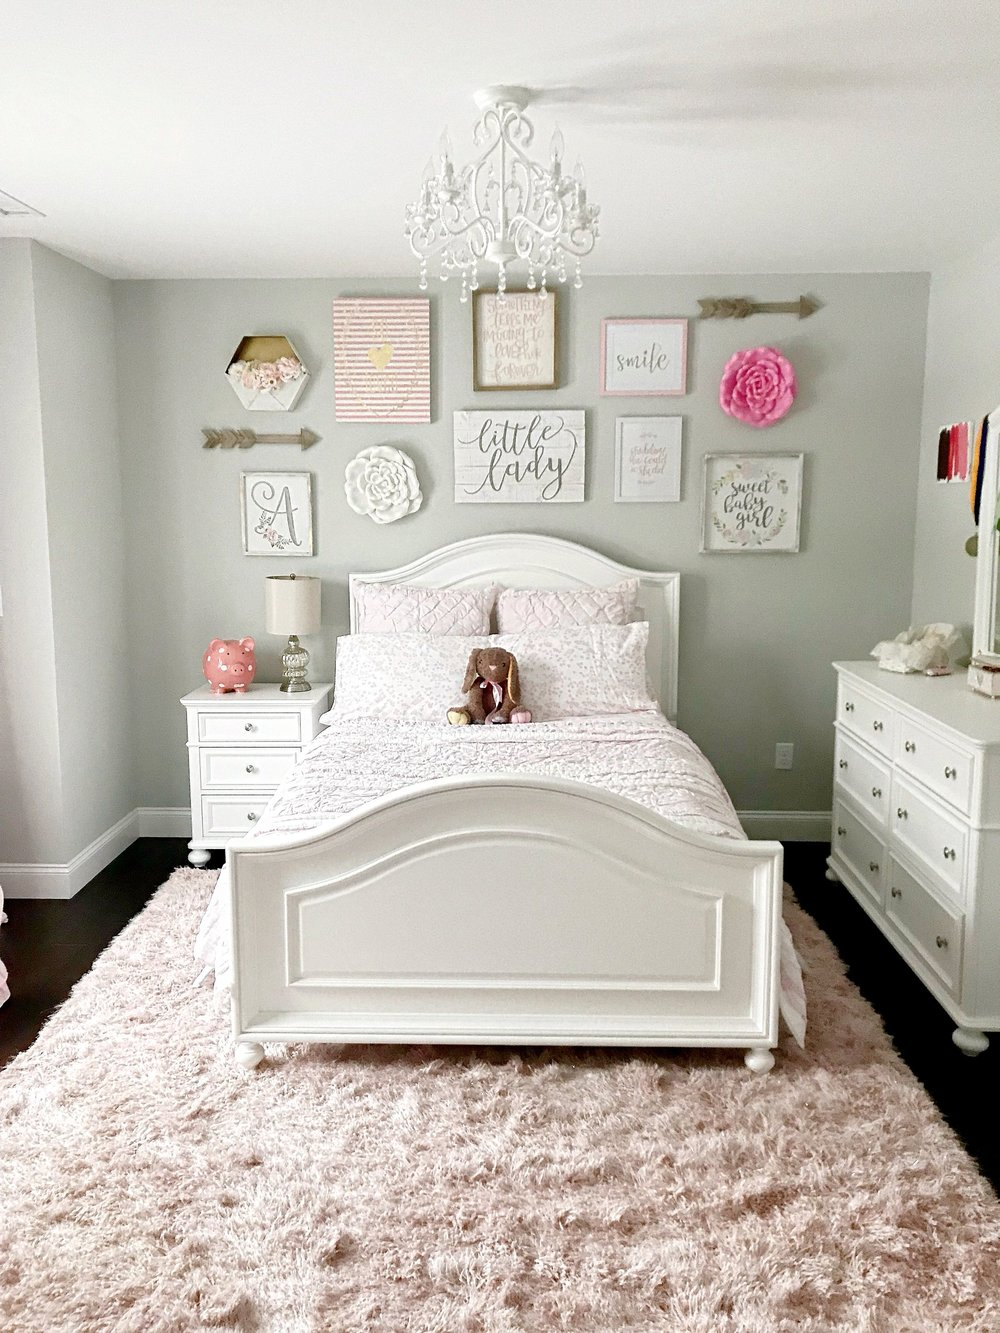 How To Make A Wall Collage Tips For Tackling It With Ease The Decor Formula